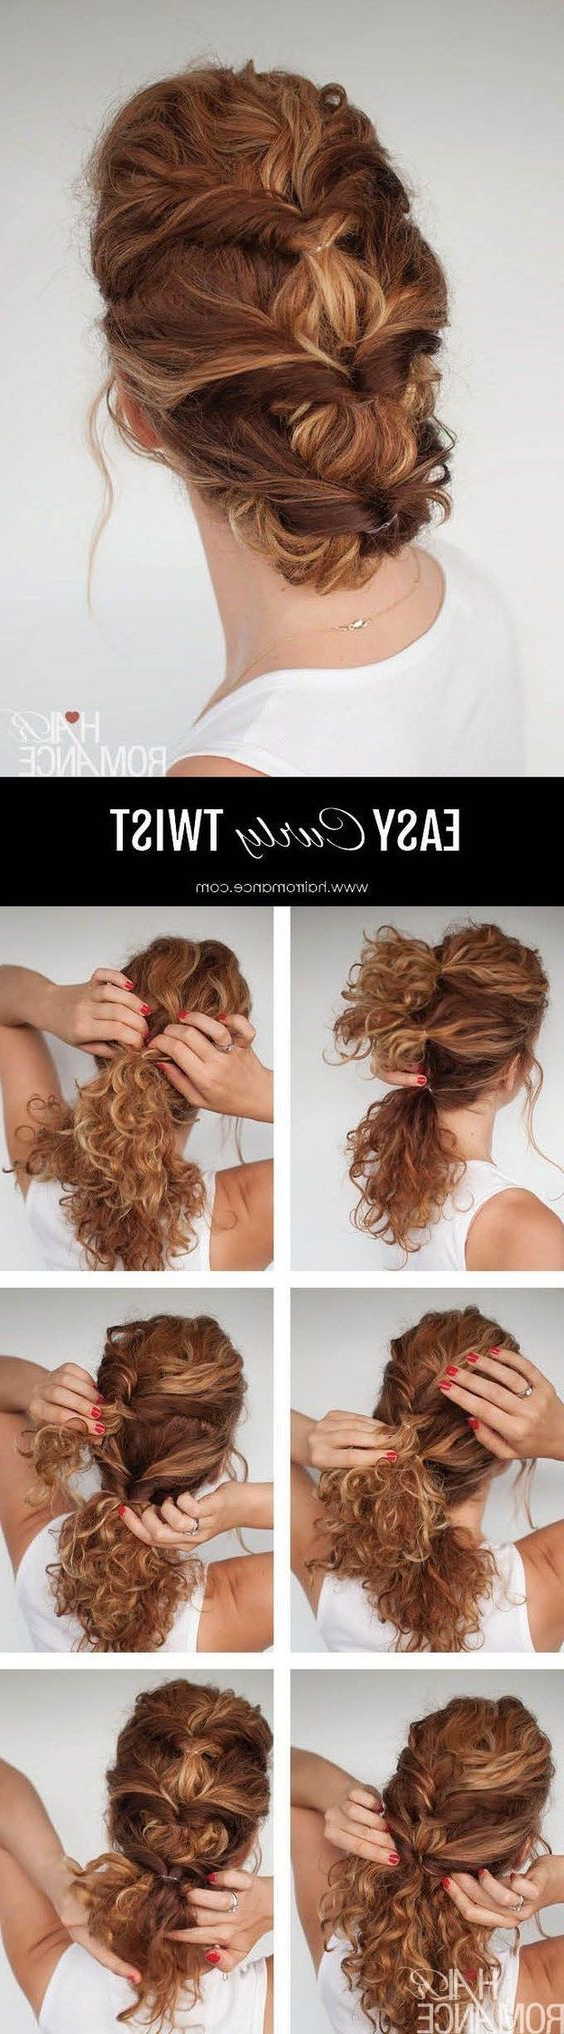 17 Incredibly Pretty Styles For Naturally Curly Hair (View 9 of 20)